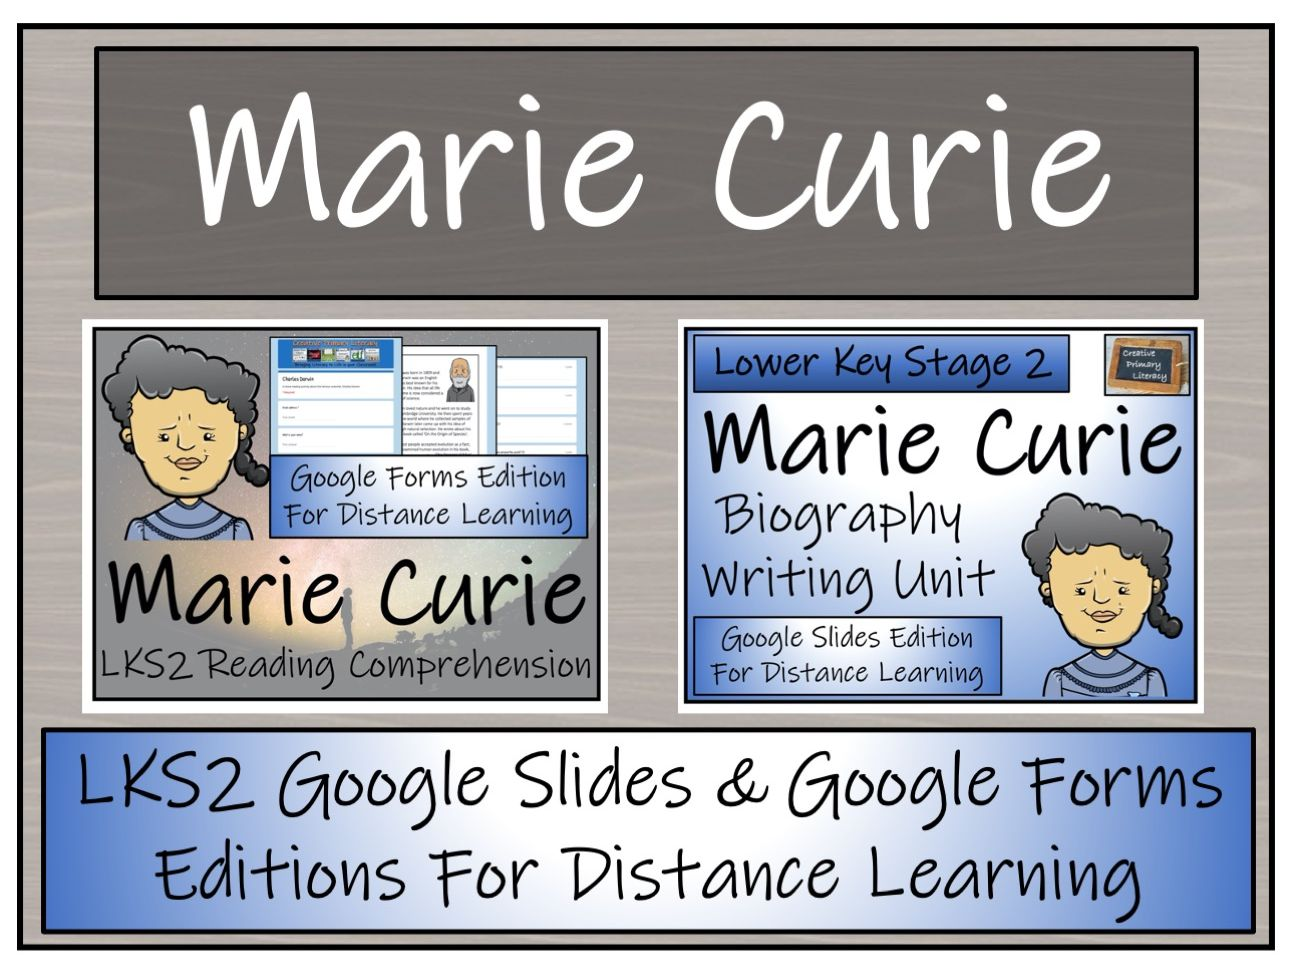 LKS2 Marie Curie Biography & Reading Comprehension Distance Learning Bundle